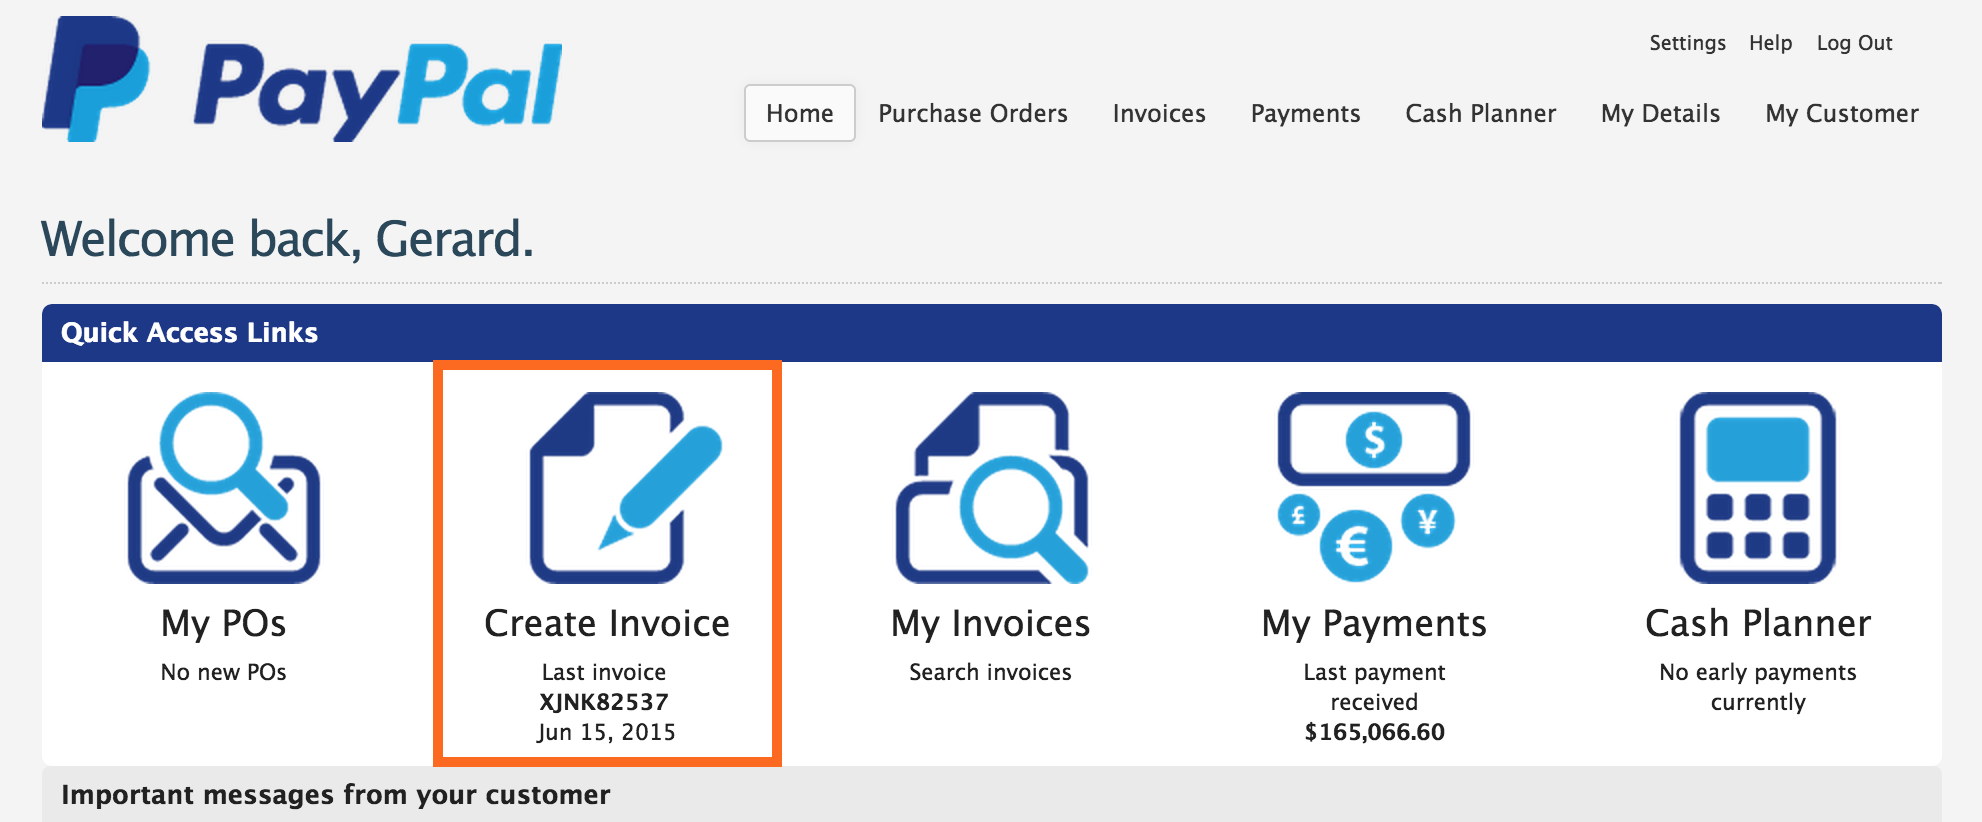 taulia support paypal how do i create a po based invoice eflip